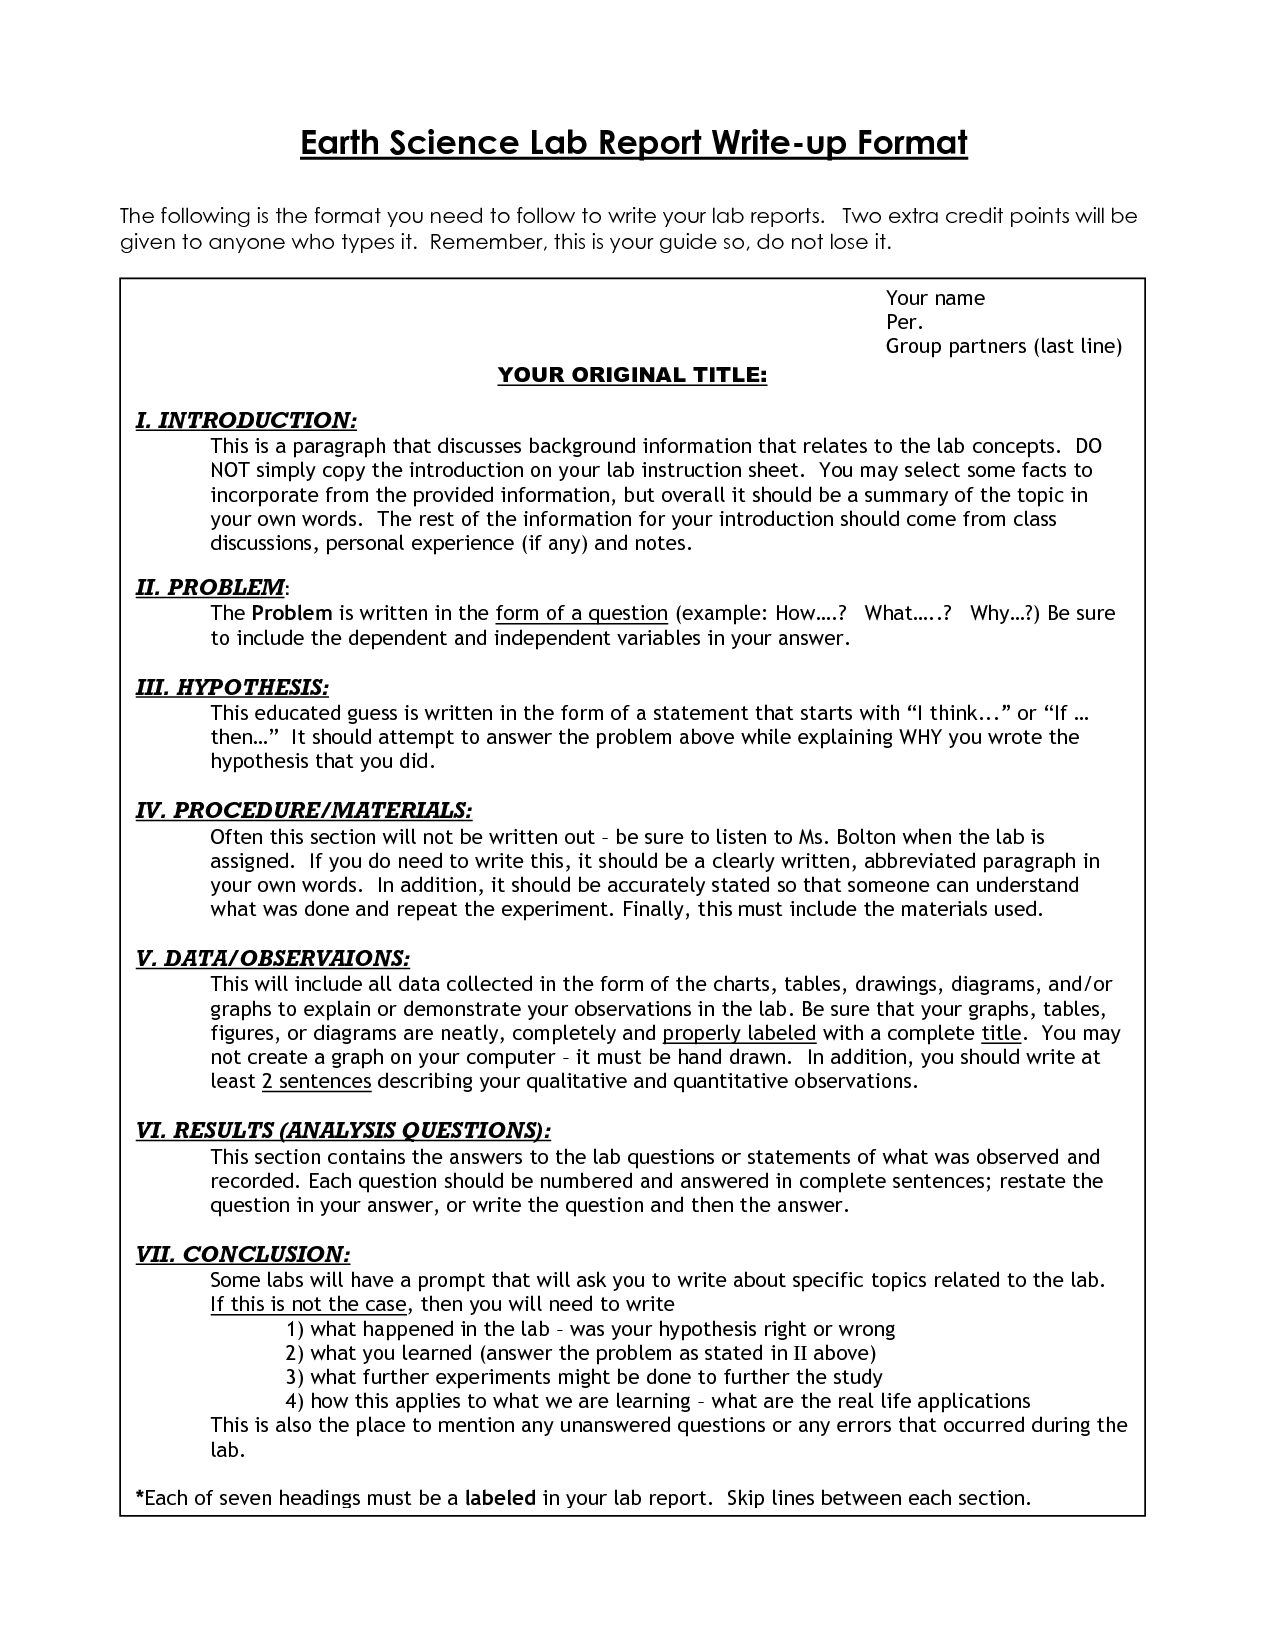 006 Pay For Research Paper Excellent Equal Work In India Performance Writing Full